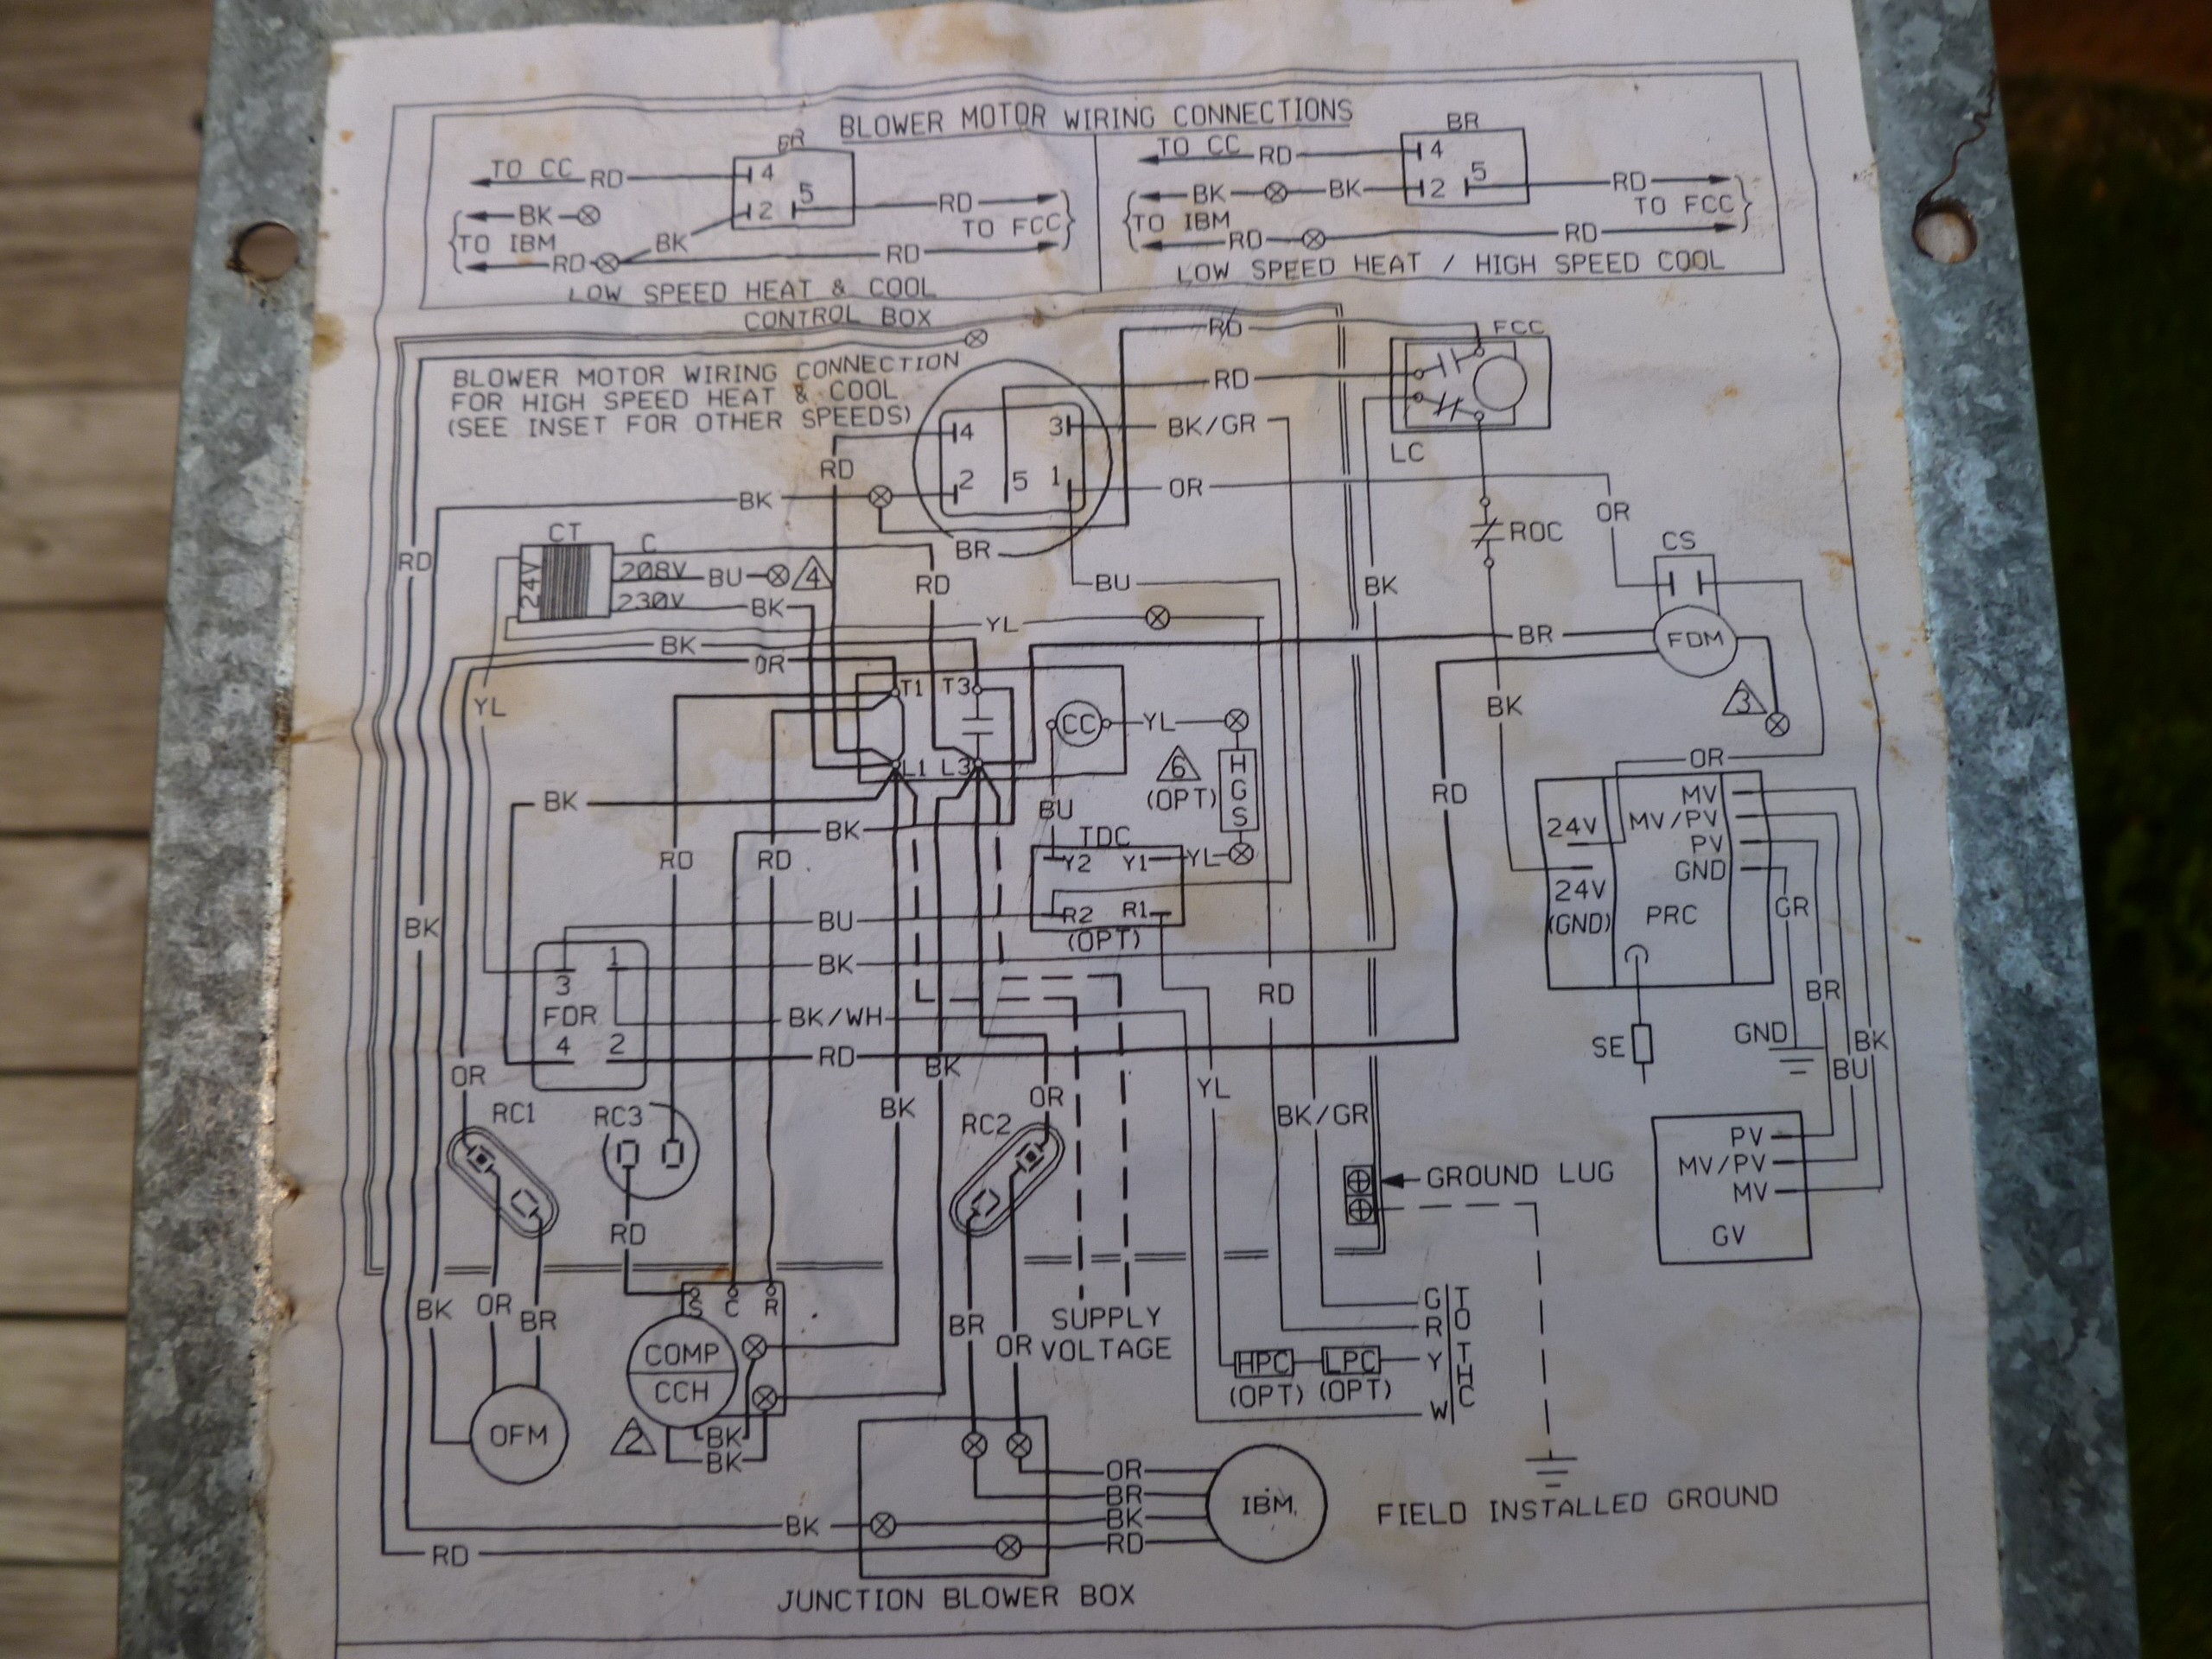 wiring diagram for nest thermostat 3rd generation images series further honeywell 24v transformer wiring diagram wiring diagram